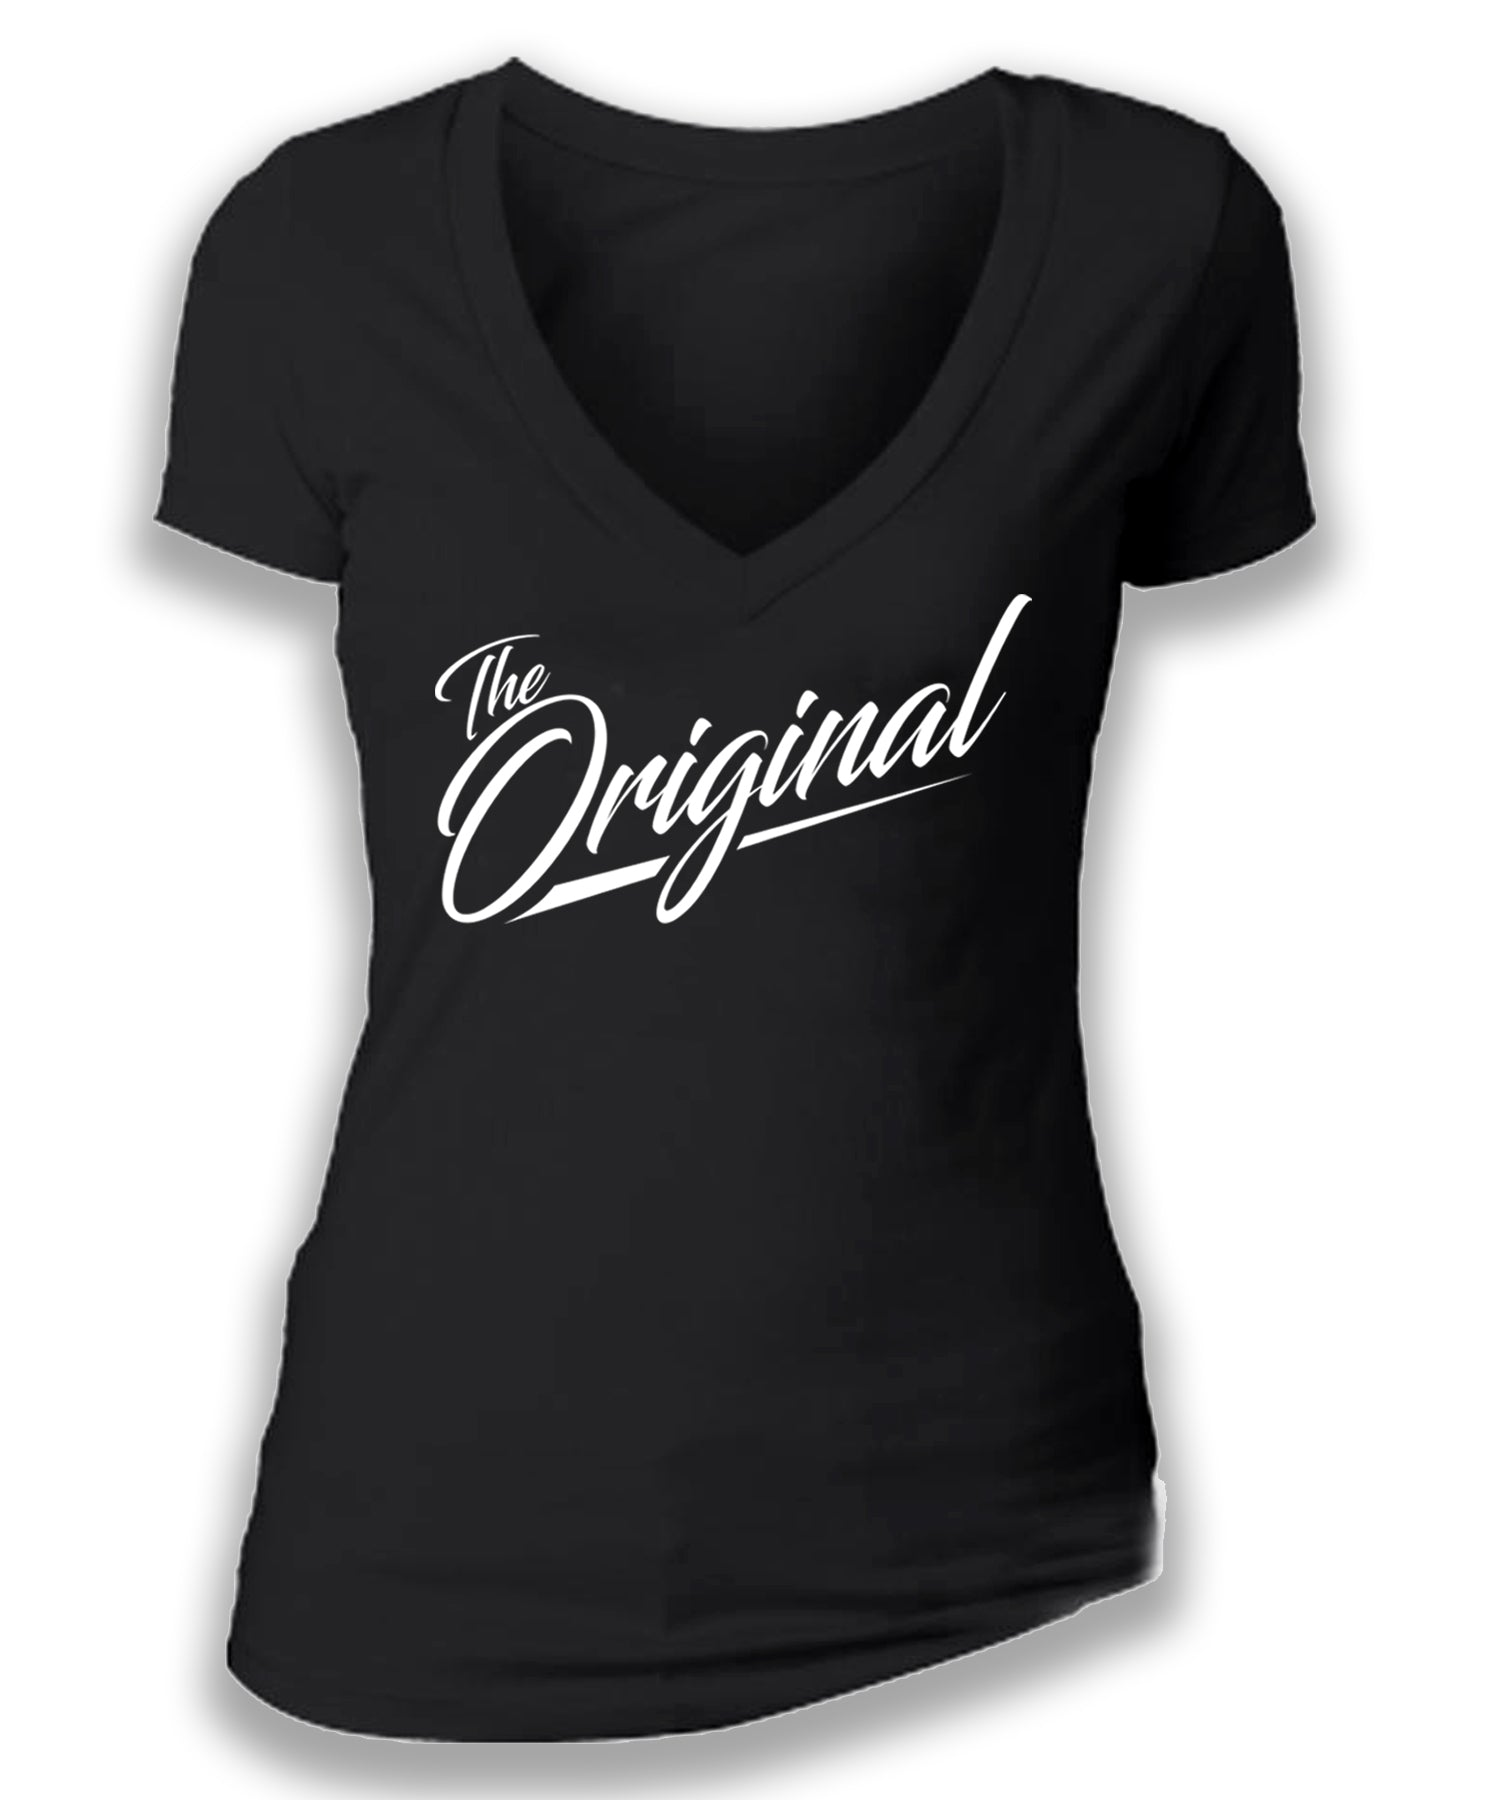 THE ORIGINAL - women's short sleeve deep v tee